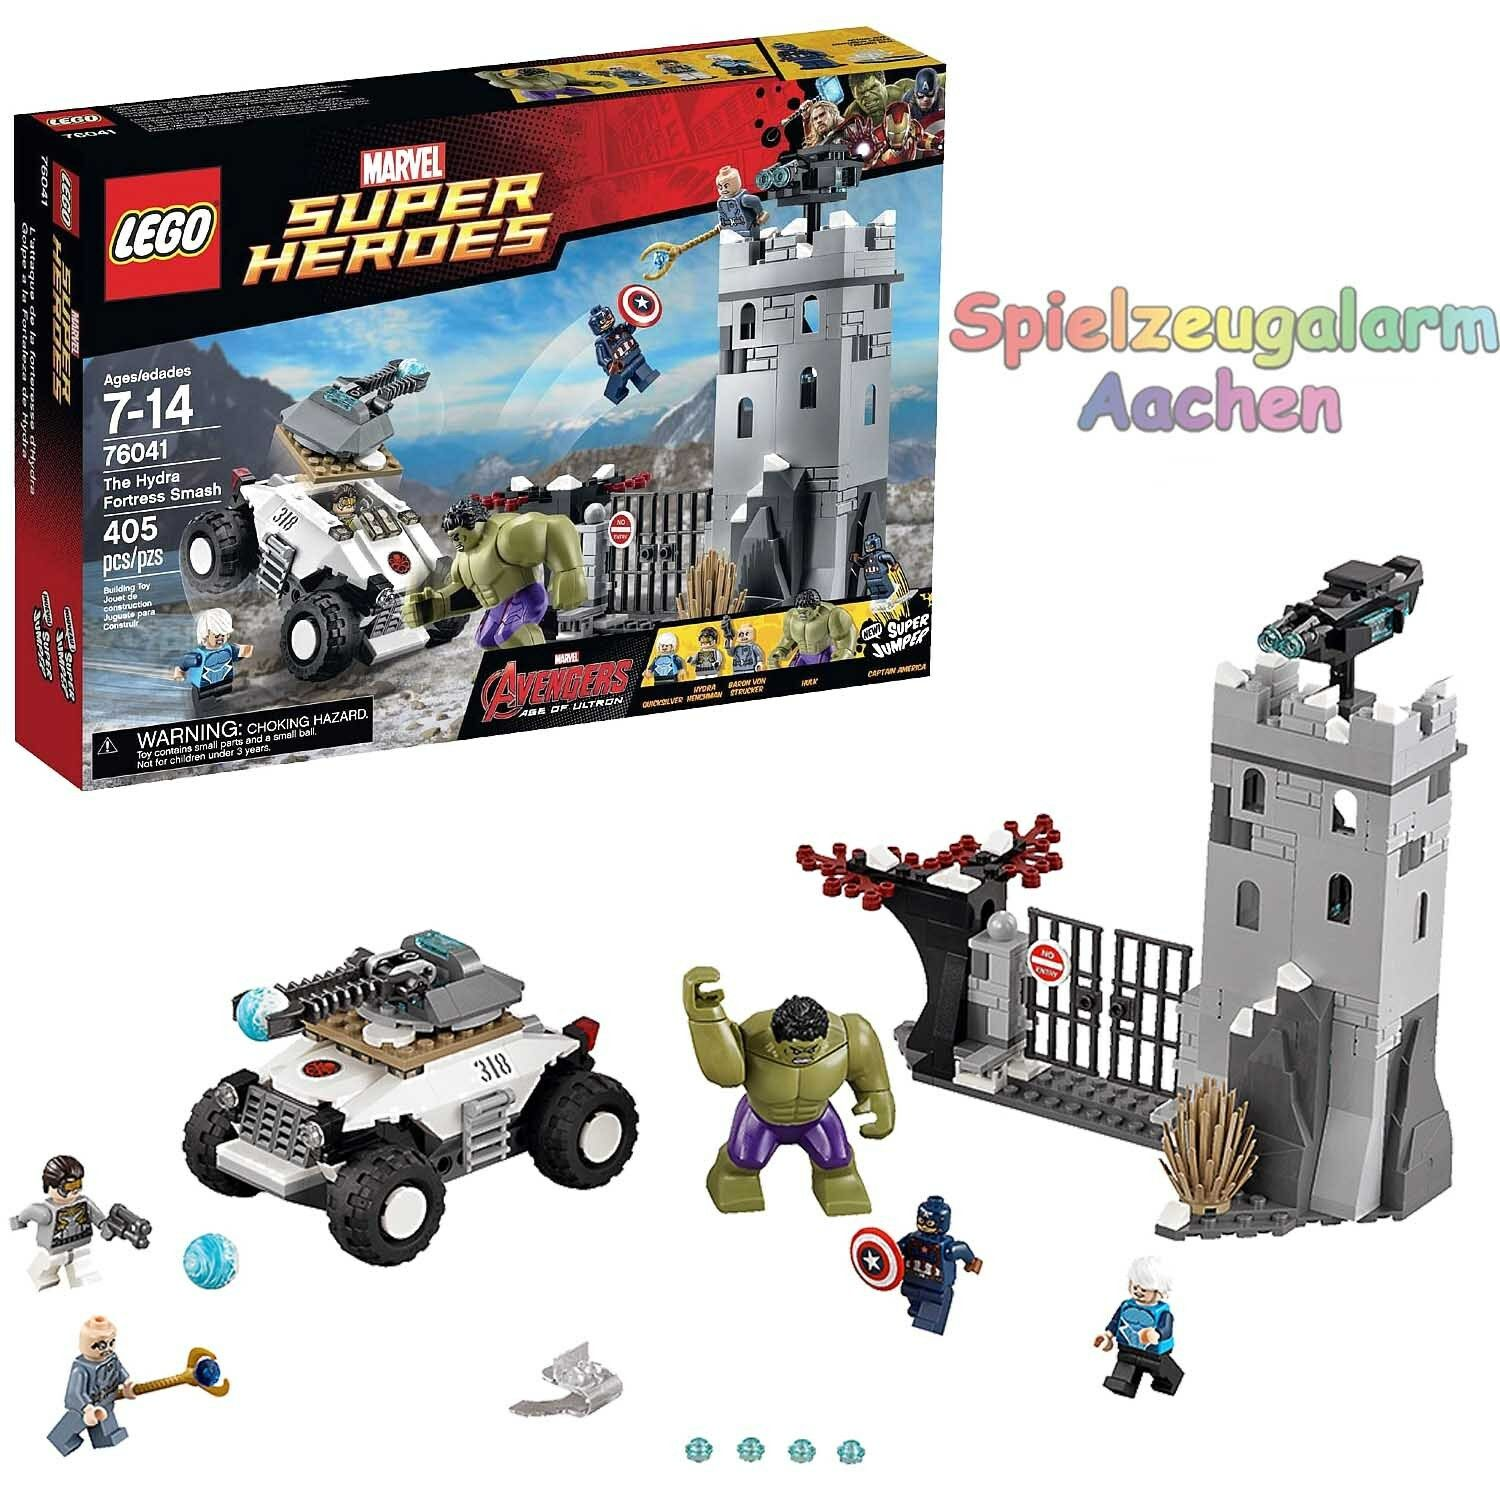 LEGO 76041 Super Heroes Marvel Avengers Festung The Hydra Fortress Smash NEW BNI